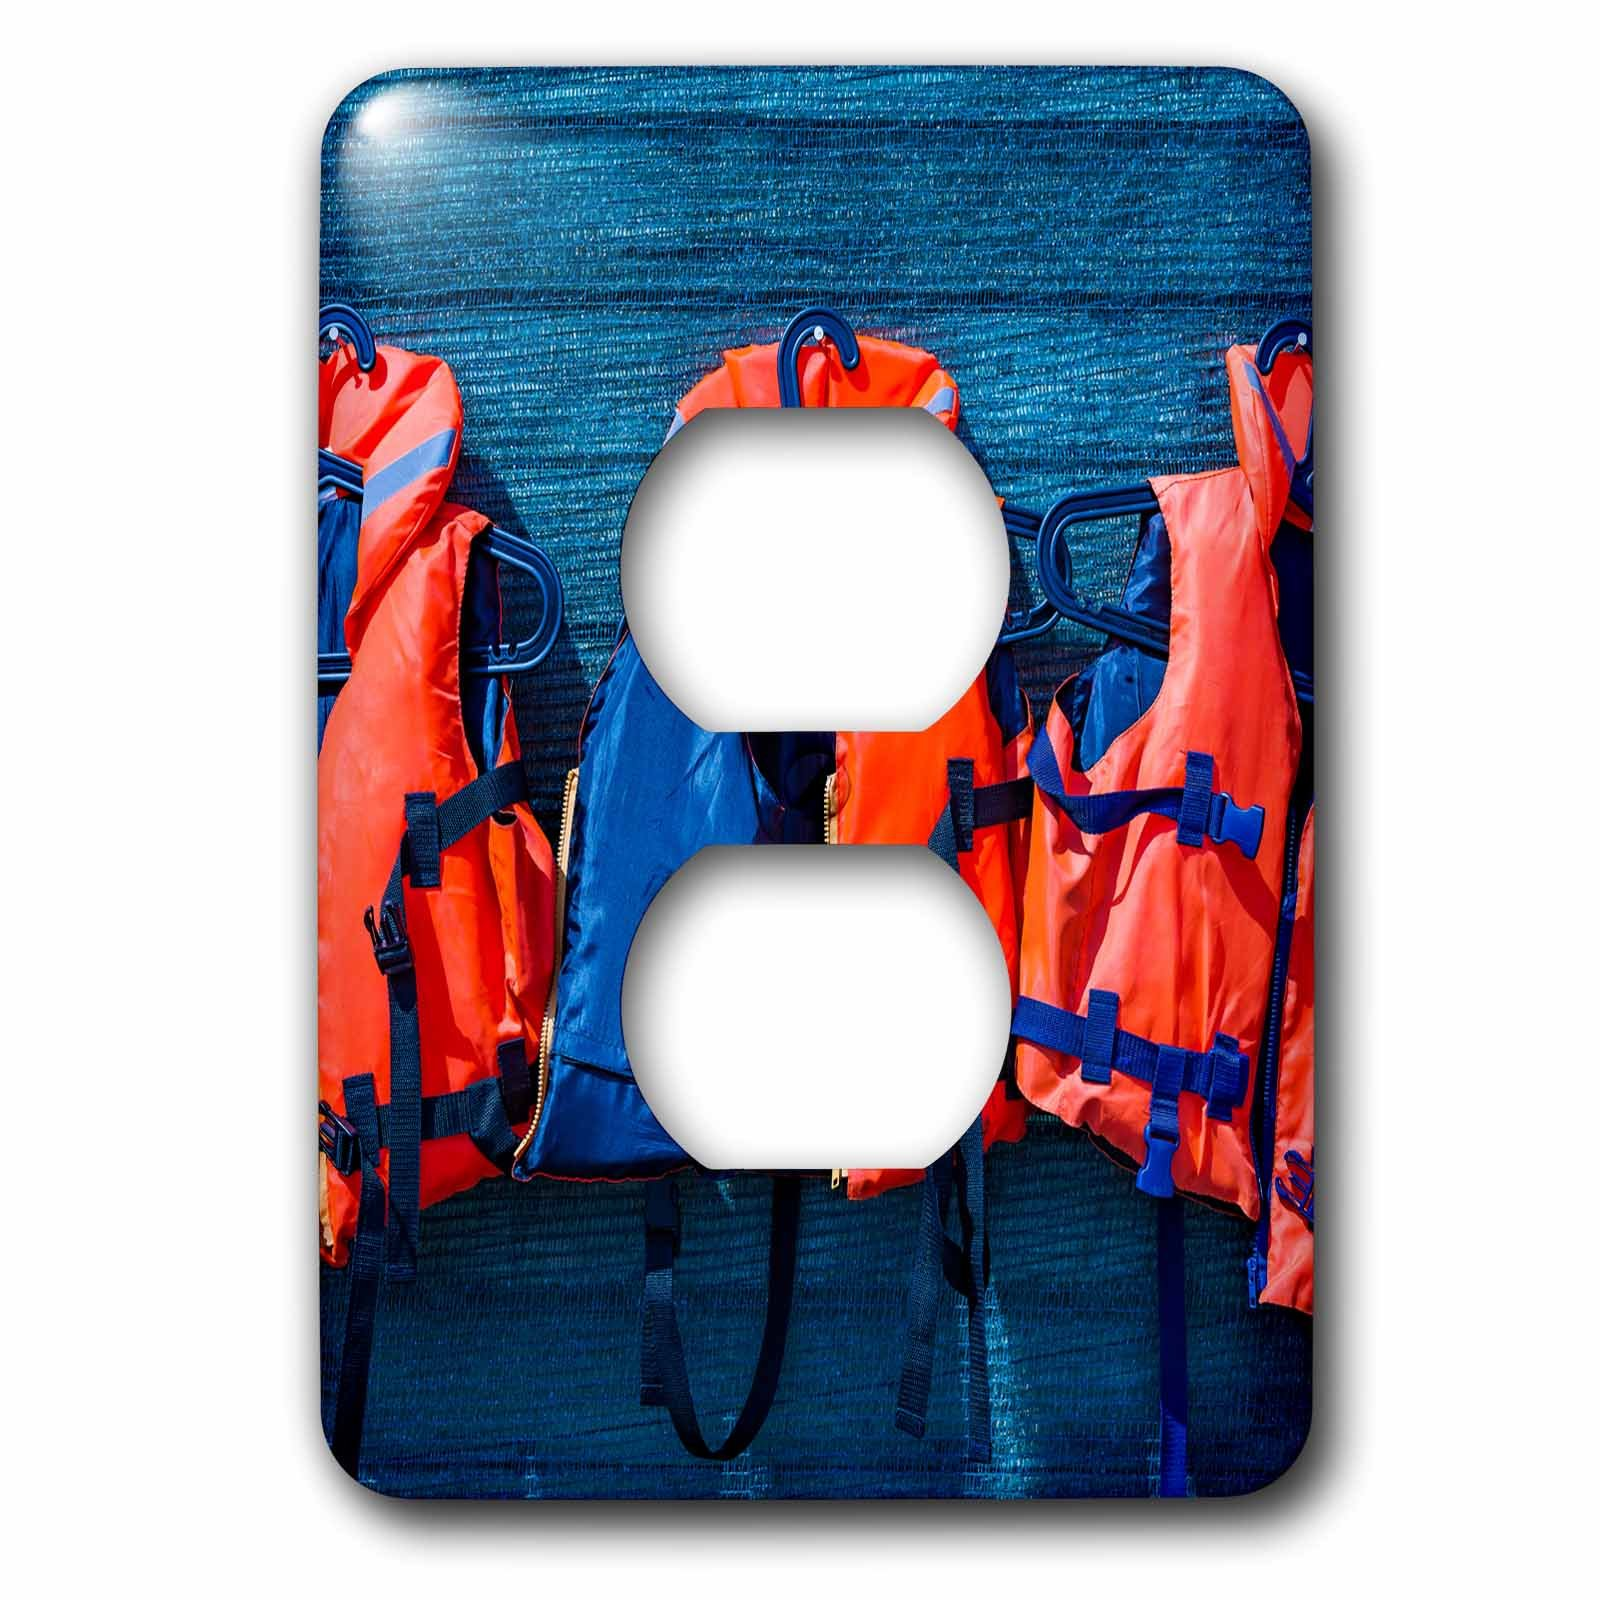 3dRose Alexis Photography - Objects - Water safety goes first. Orange life saving jackets on a blue wall - Light Switch Covers - 2 plug outlet cover (lsp_267156_6)